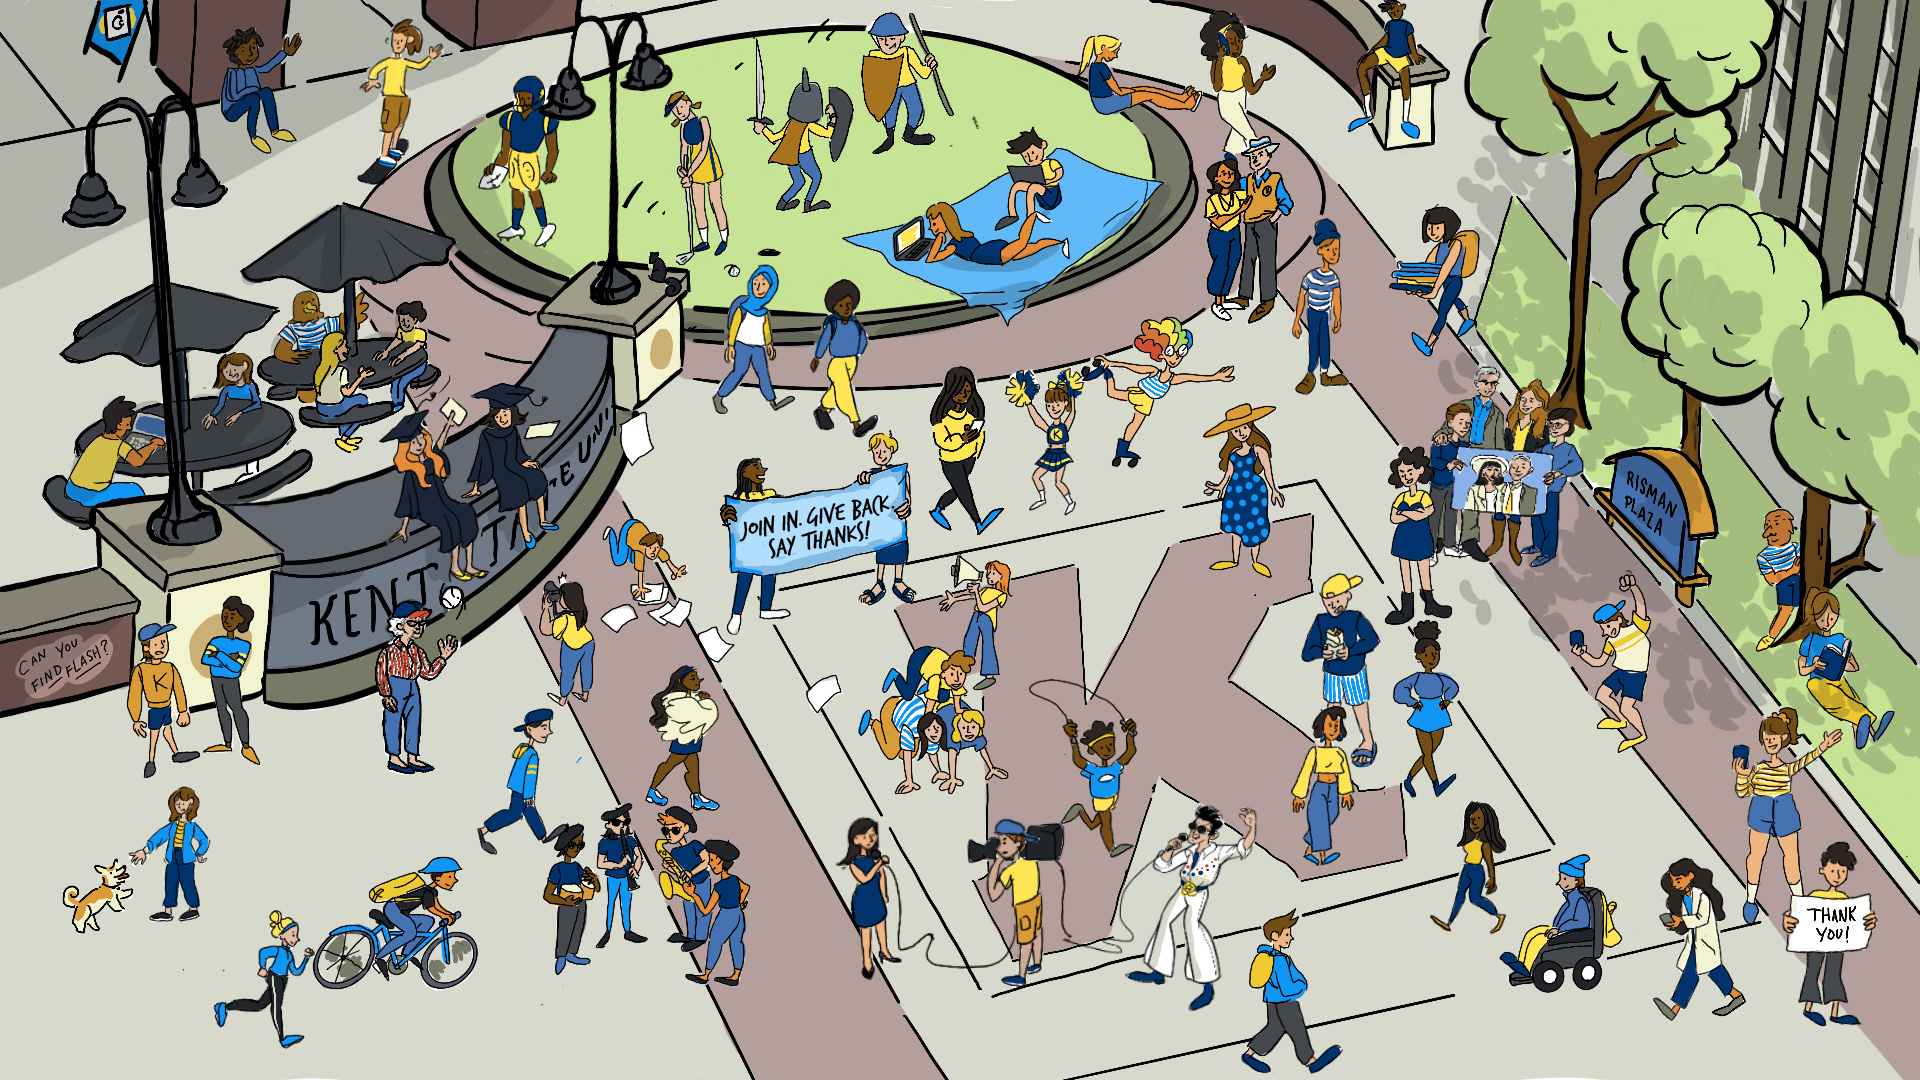 """A large Where's Waldo-style image and illustrated drawing overhead view of Kent State's Risman Plaza… """"Flash"""" is hiding behind the Kent State University sign at a picnic table.  President Todd Diacon and Moema Furtado are located by the grassy circular landscaped area.  The Risman Family is located to the right of the scene, located near the Risman Plaza sign and the Kent State """"K"""" on the sidewalk.  Margaret """"Peg"""" Clark Morgan is located in front of the Kent State University sign, and is wearing a baseball cap and tossing a baseball up in the air.  The grateful KSU student is located in the bottom right corner, holding a """"Thank you"""" sign. The virtual volunteer is holding a cell phone and waving and standing behind the grateful KSU student.  The KSU graduates/alumni are sitting on the Kent State University sign in their graduation regalia, smiling."""